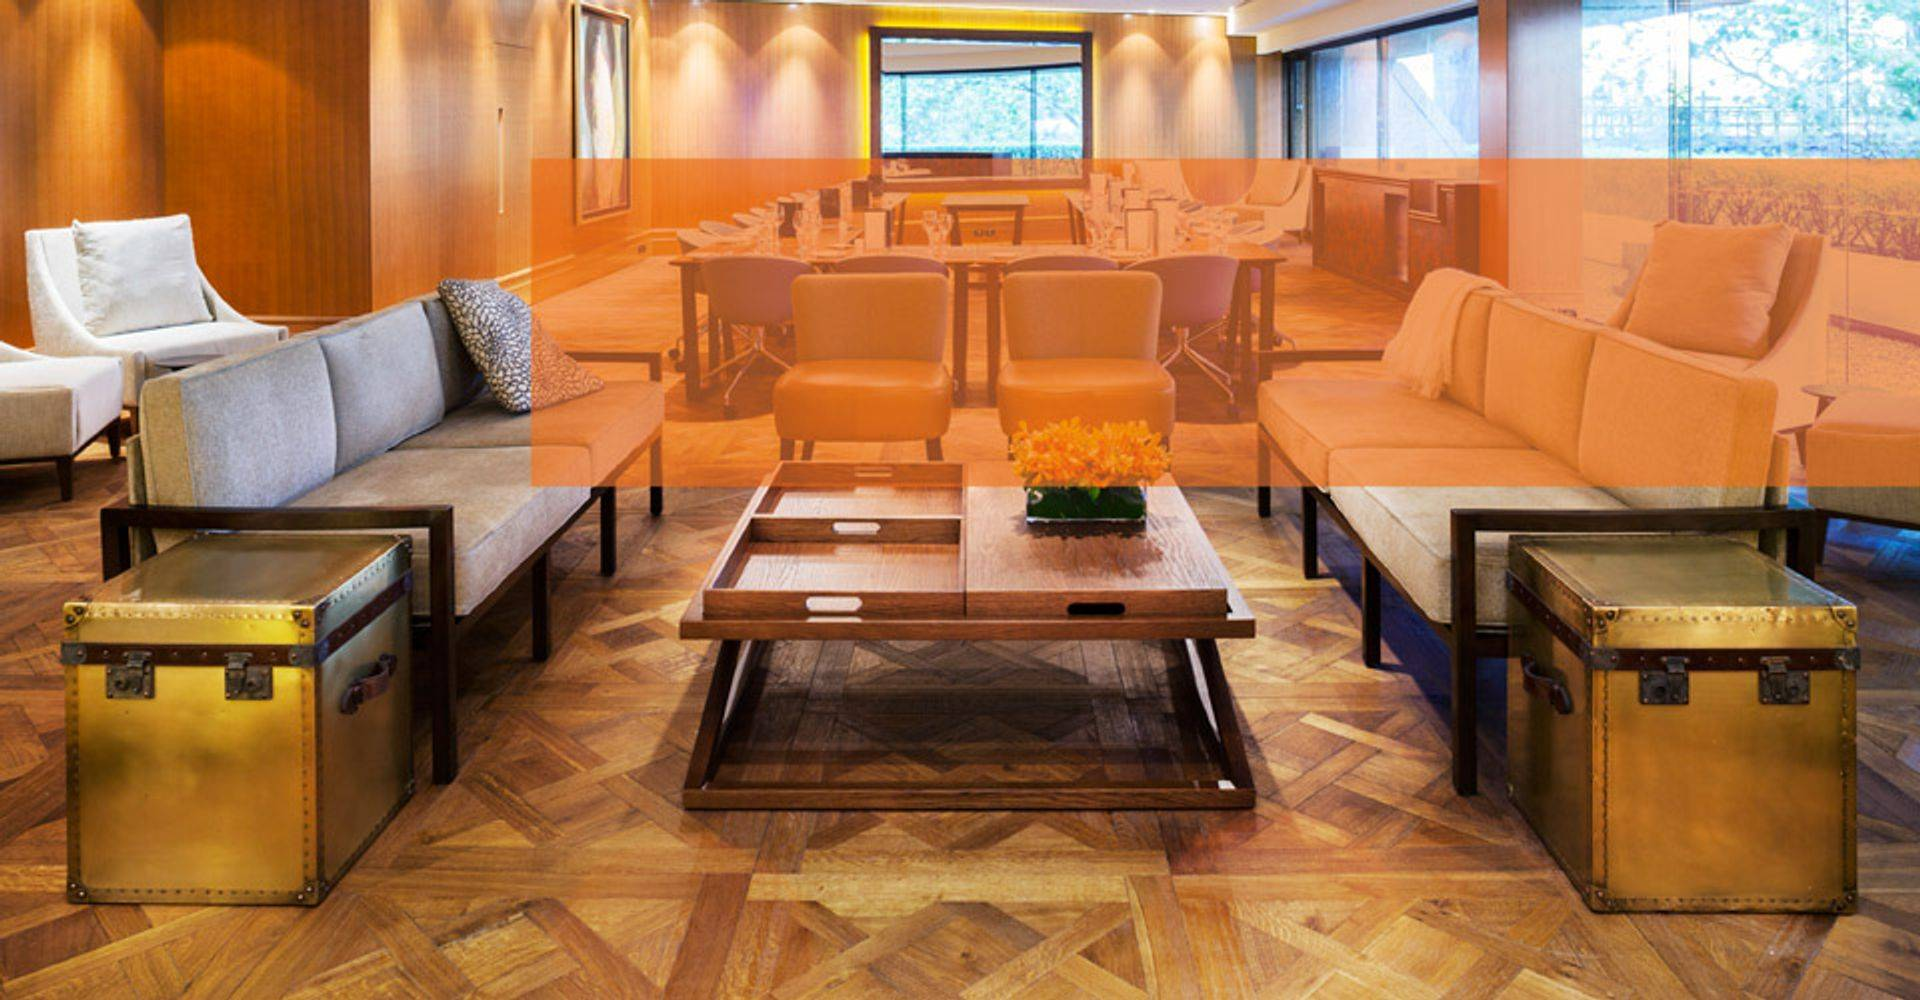 Commercial Flooring Contractor by Finer Works Ltd